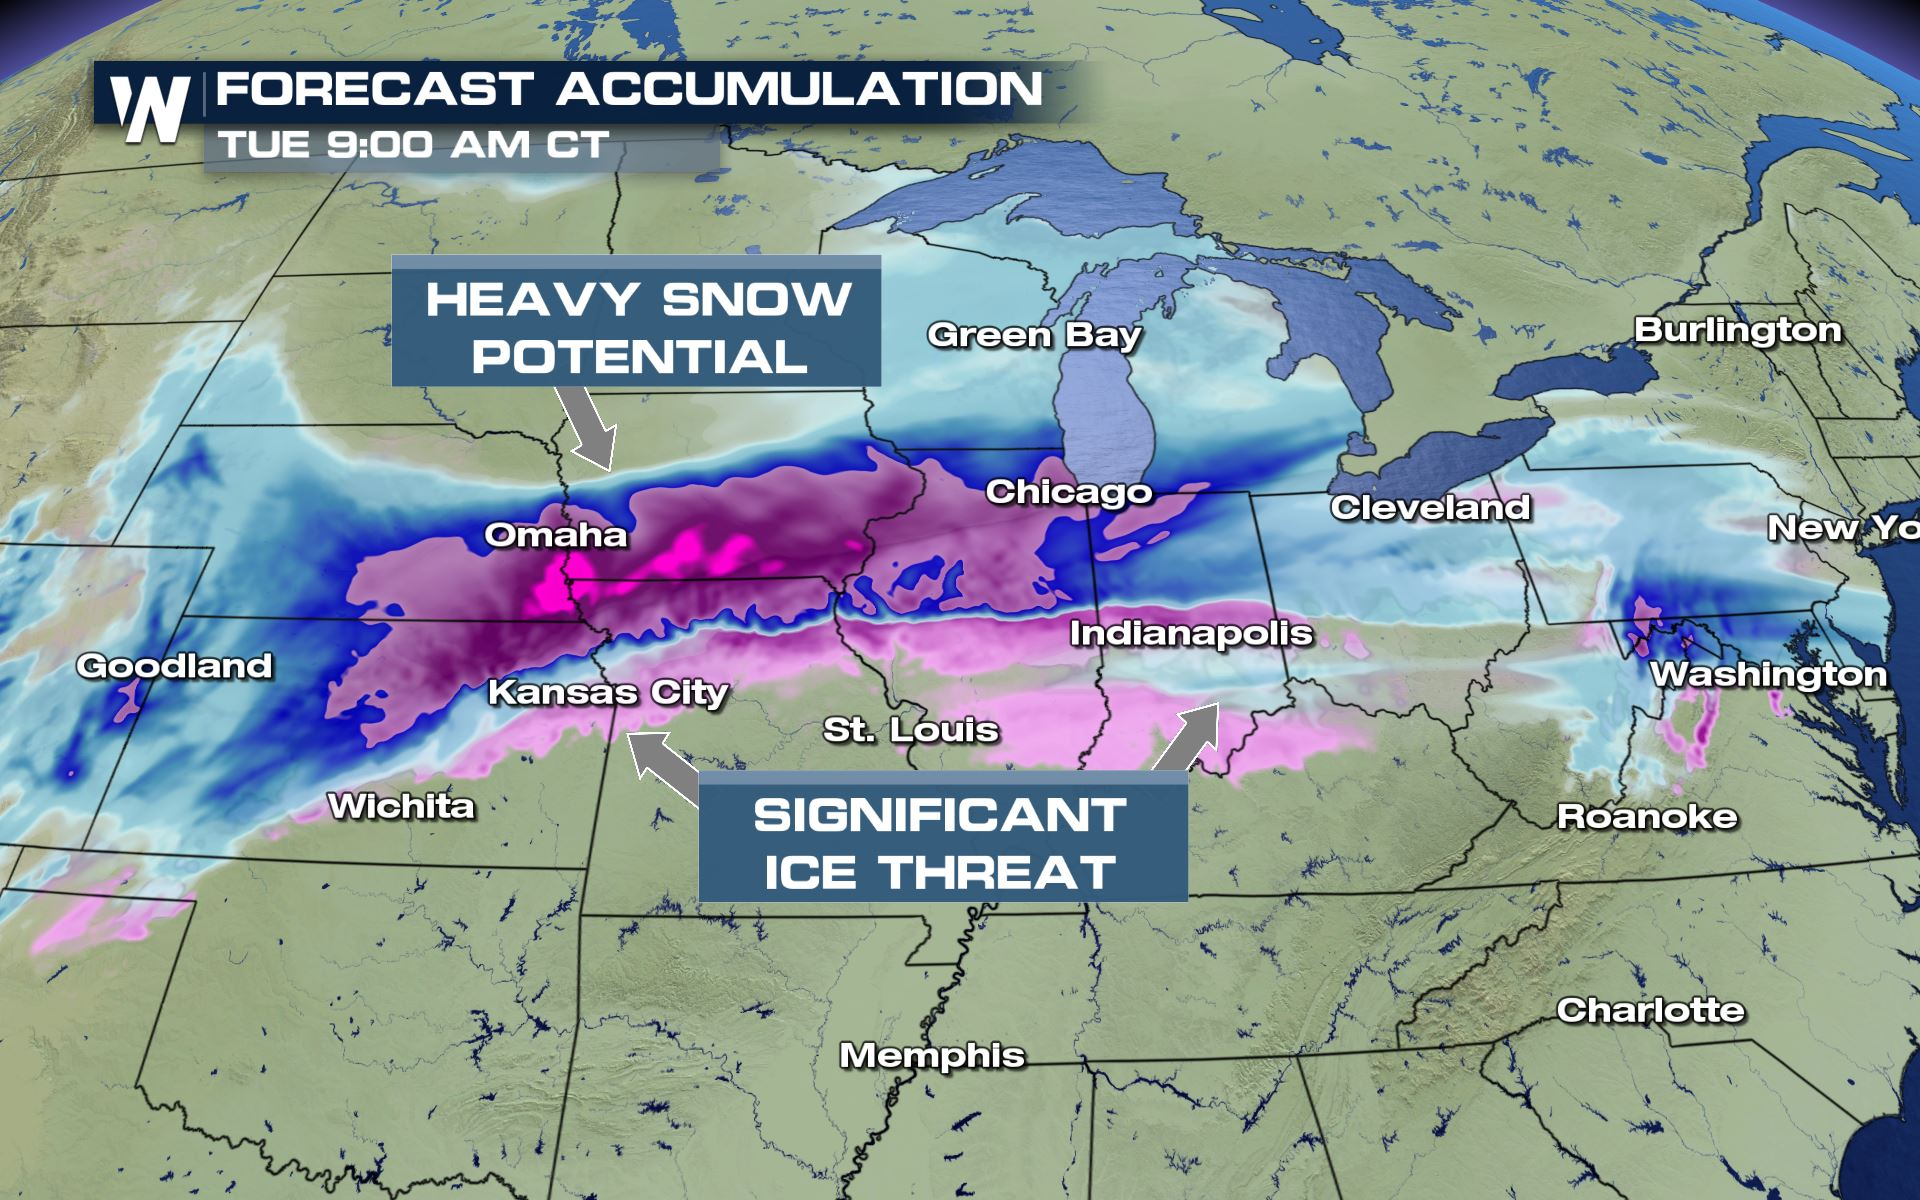 Heavy Snow and Ice Expected from the Central Plains through the Midwest